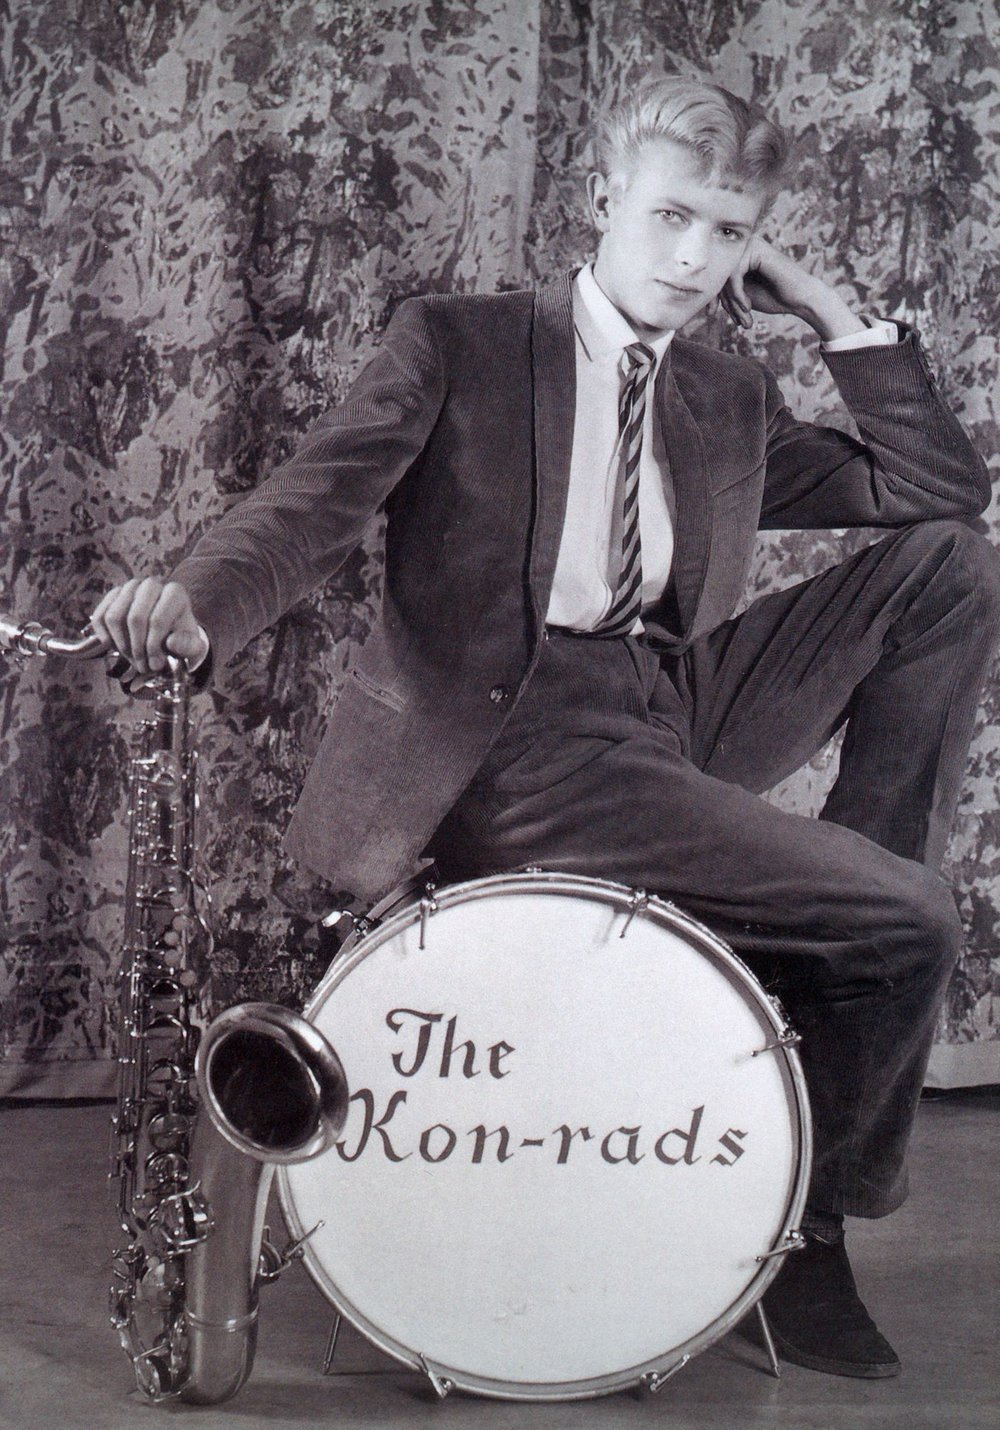 Publicity photograph for The Kon-rads, 1963, Courtesy of The David Bowie Archive © Victoria and Albert Museum